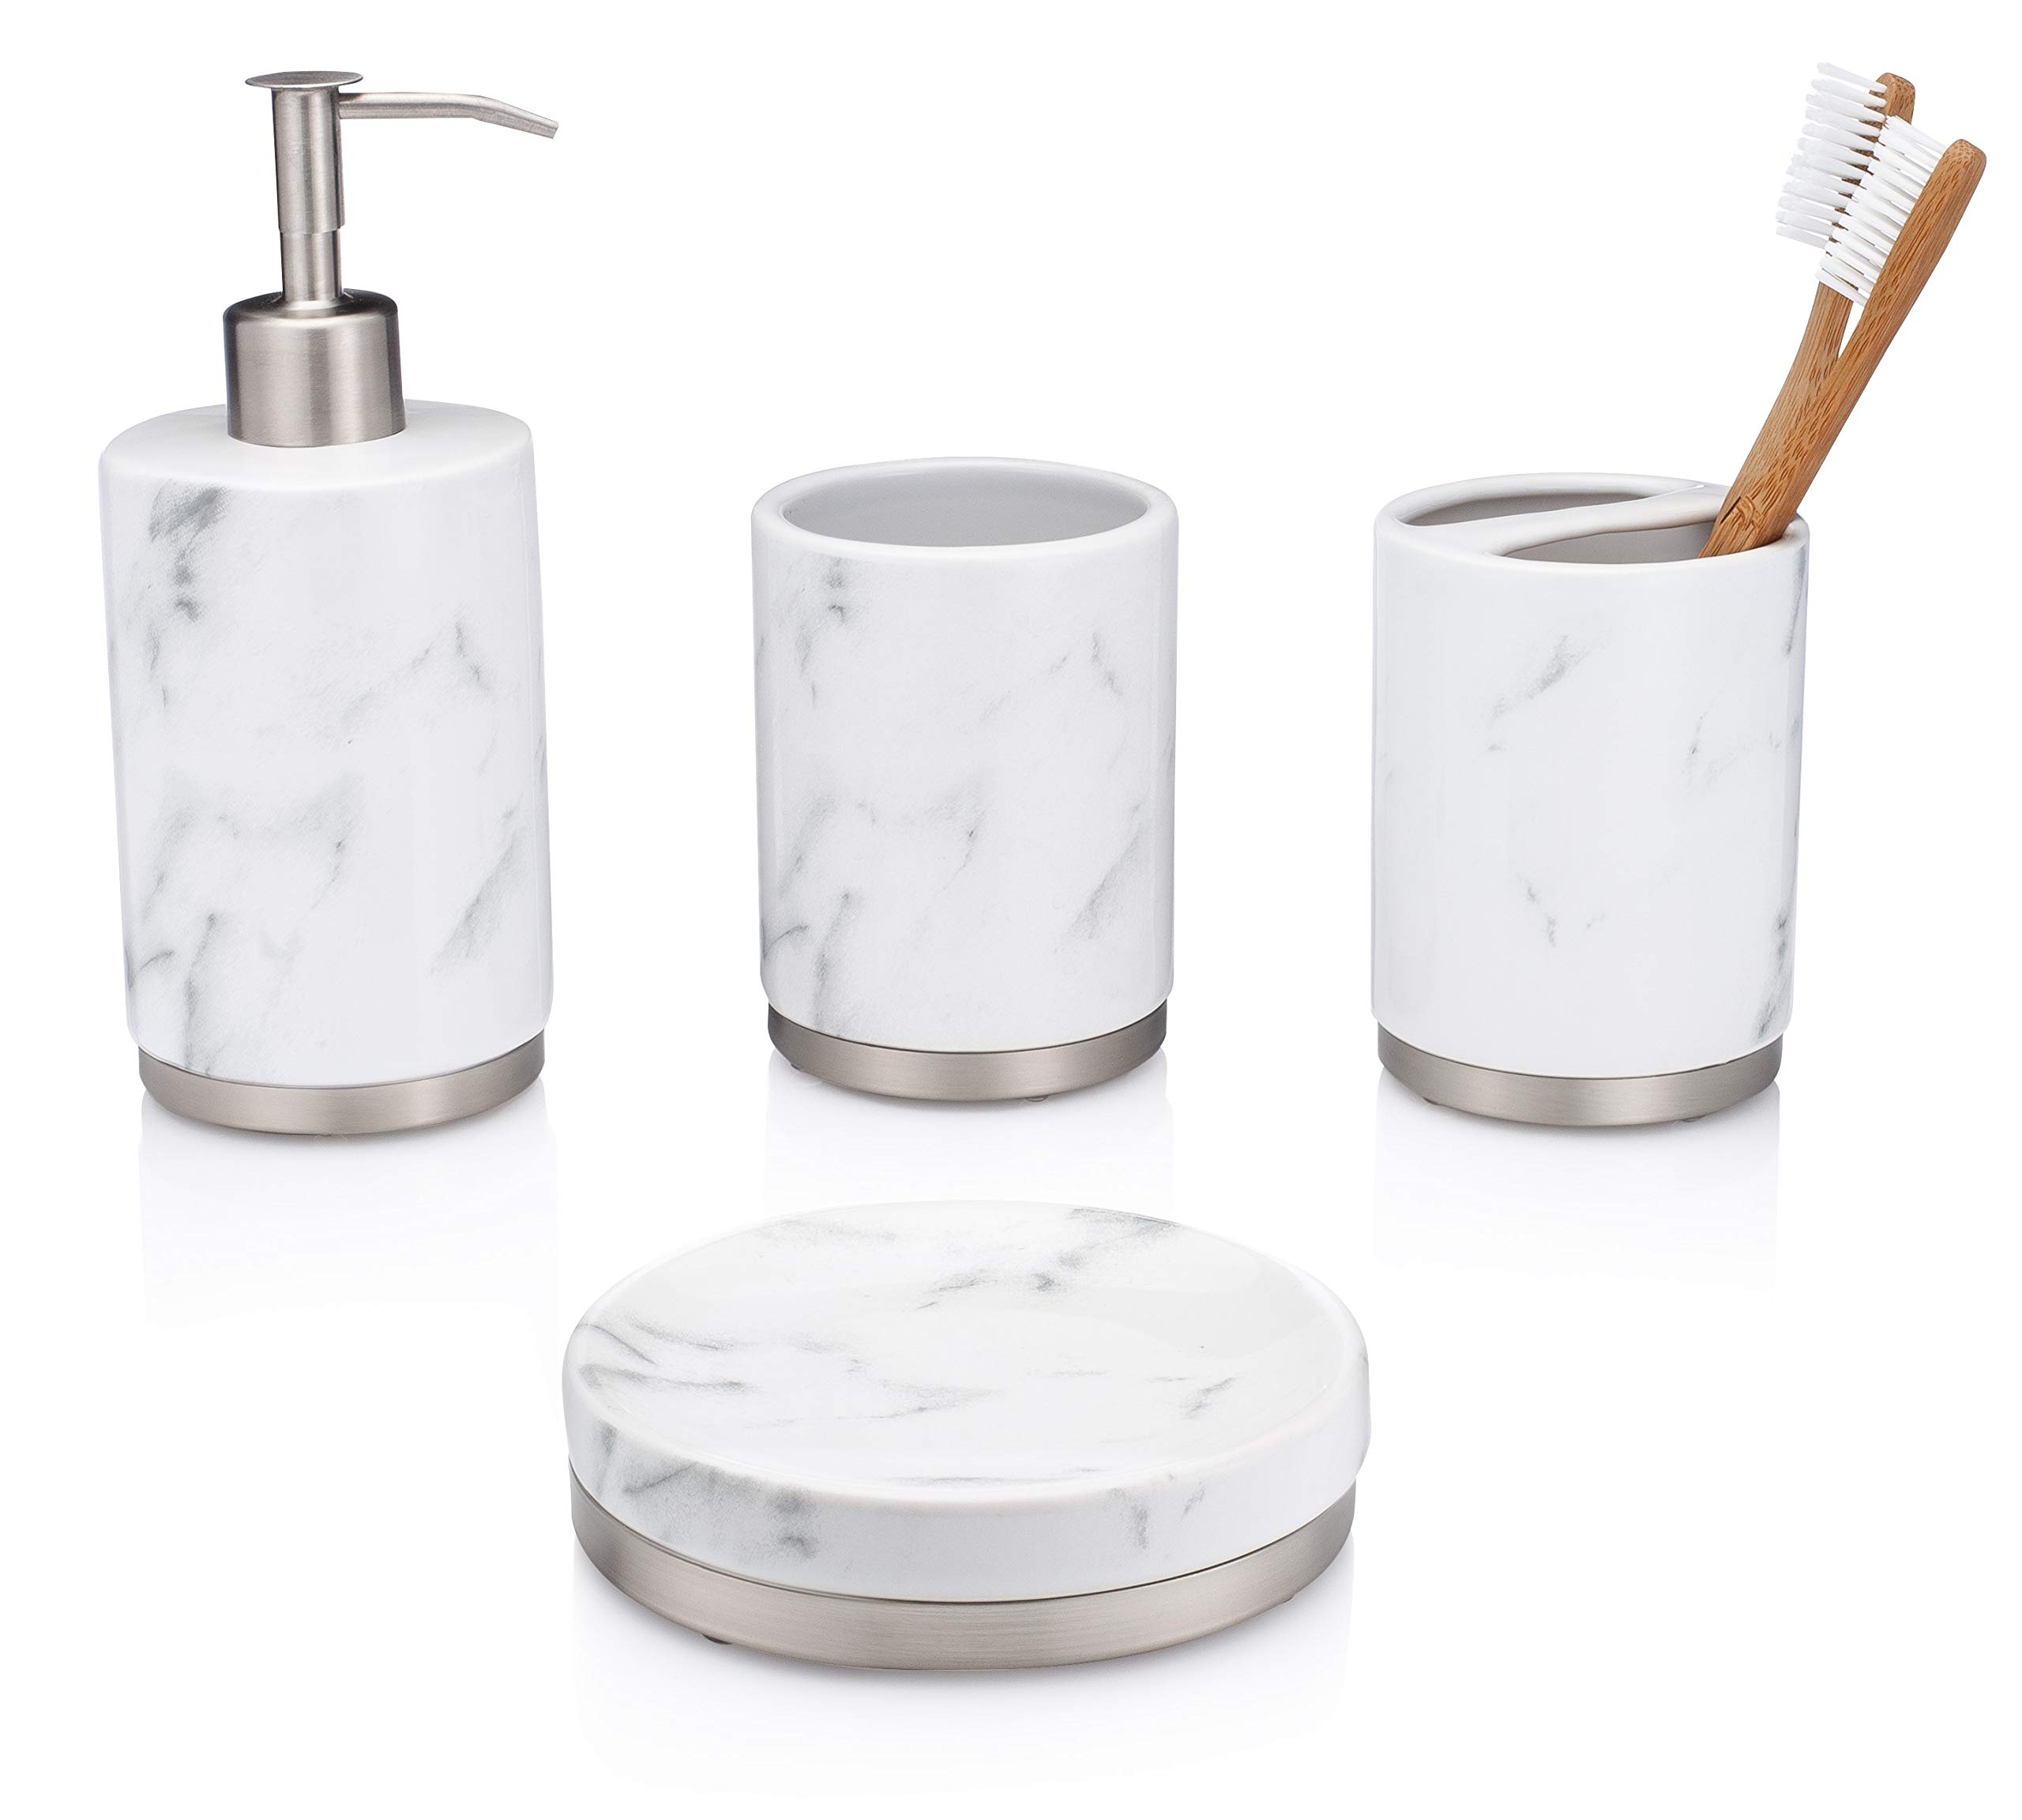 EssentraHome 4-Piece White Ceramic Bathroom Accessory Set with Marble Look, Complete Set Includes: Soap/Lotion Dispenser, Toothbrush Holder, Tumbler, and Soap Dish - BEAUTIFUL MARBLE LOOK: This bathroom accessory set has a beautiful printed marble look, making it look super elegant BEAUTIFUL CERAMIC: This set is made from beautiful, quality ceramic. Giving this set a touch of elegance, as well as a quality feel STAINLESS-STEEL PUMP: The lotion/soap dispenser included in this set comes with a brushed stainless-steel pump. With the stainless-steel pump you can rest assure that there will be no rust despite the humid conditions a restroom might bring - bathroom-accessory-sets, bathroom-accessories, bathroom - 71QQKvV9JDL -